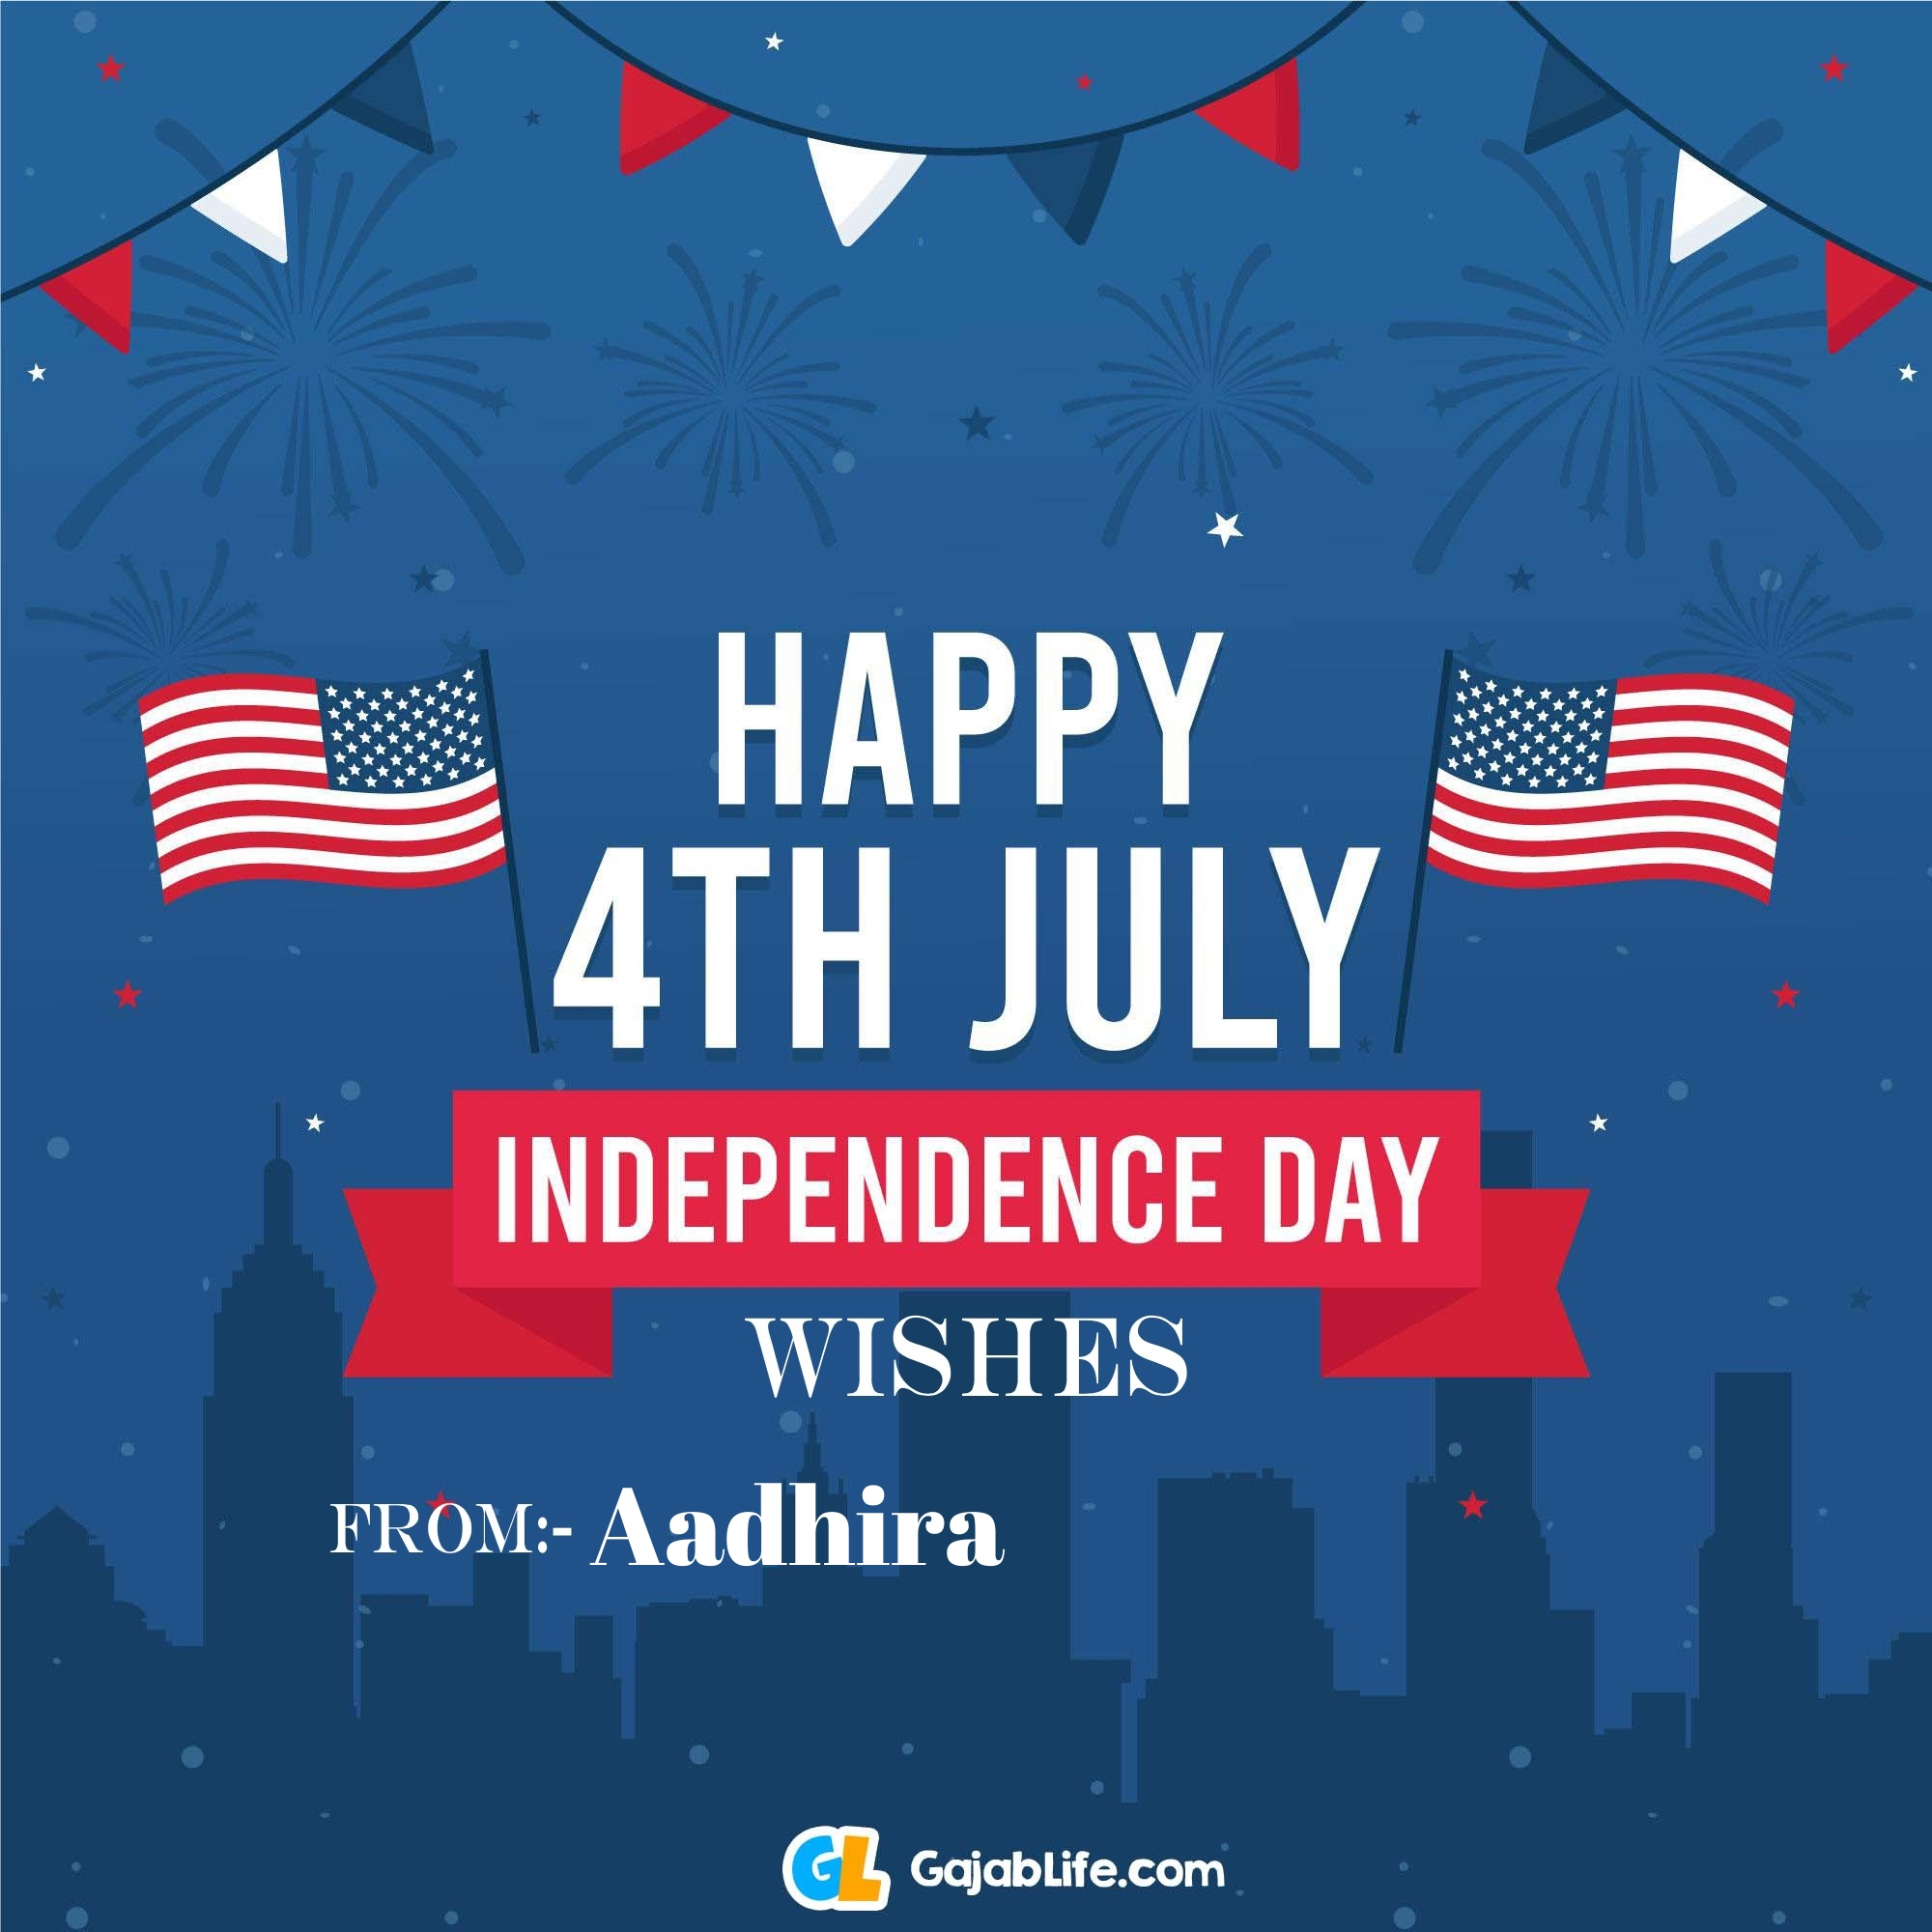 Aadhira happy independence day united states of america images